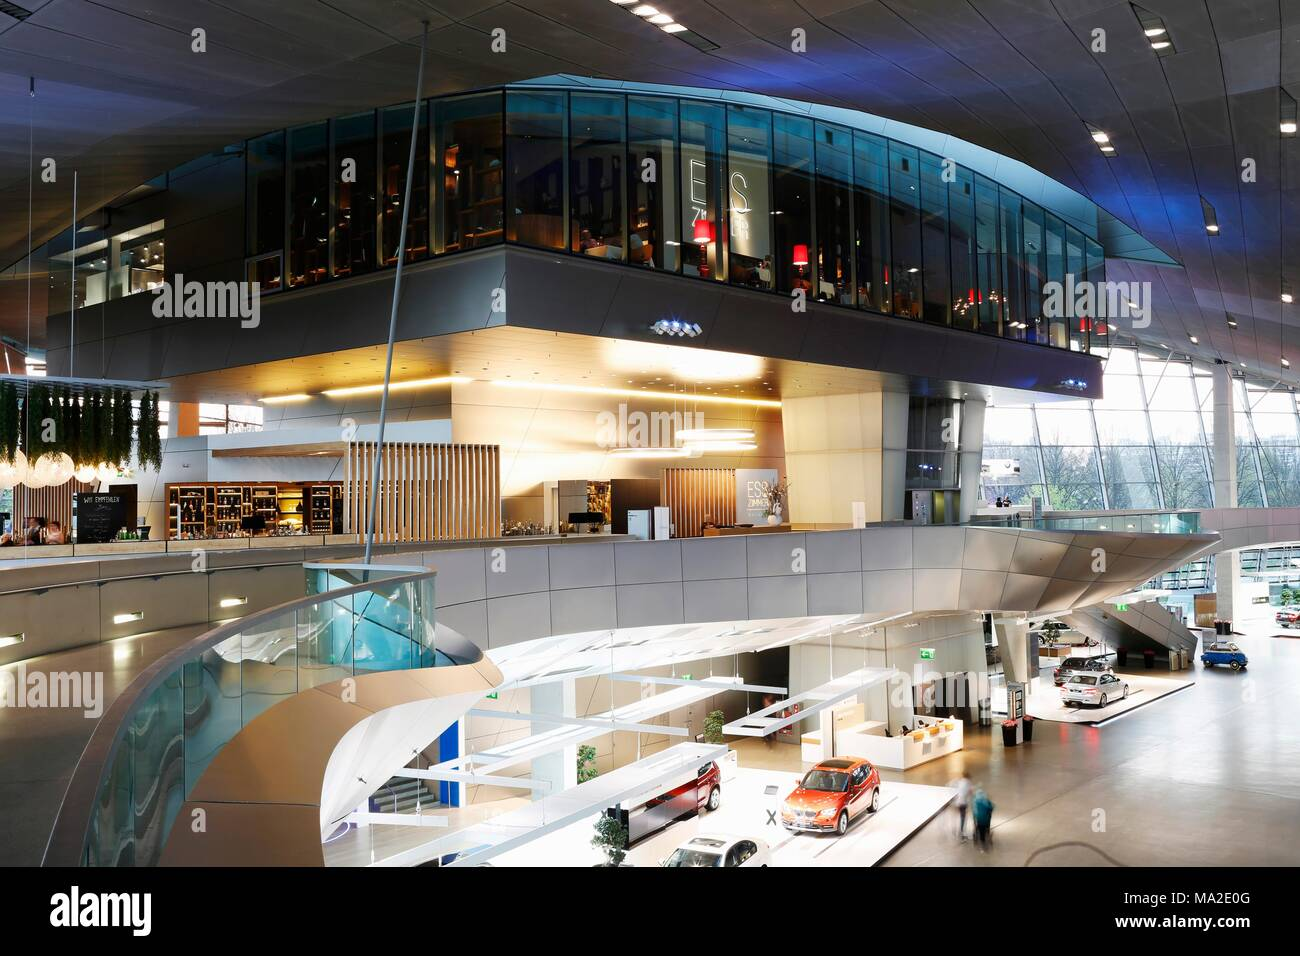 bmw world interior stock photos bmw world interior stock images alamy. Black Bedroom Furniture Sets. Home Design Ideas